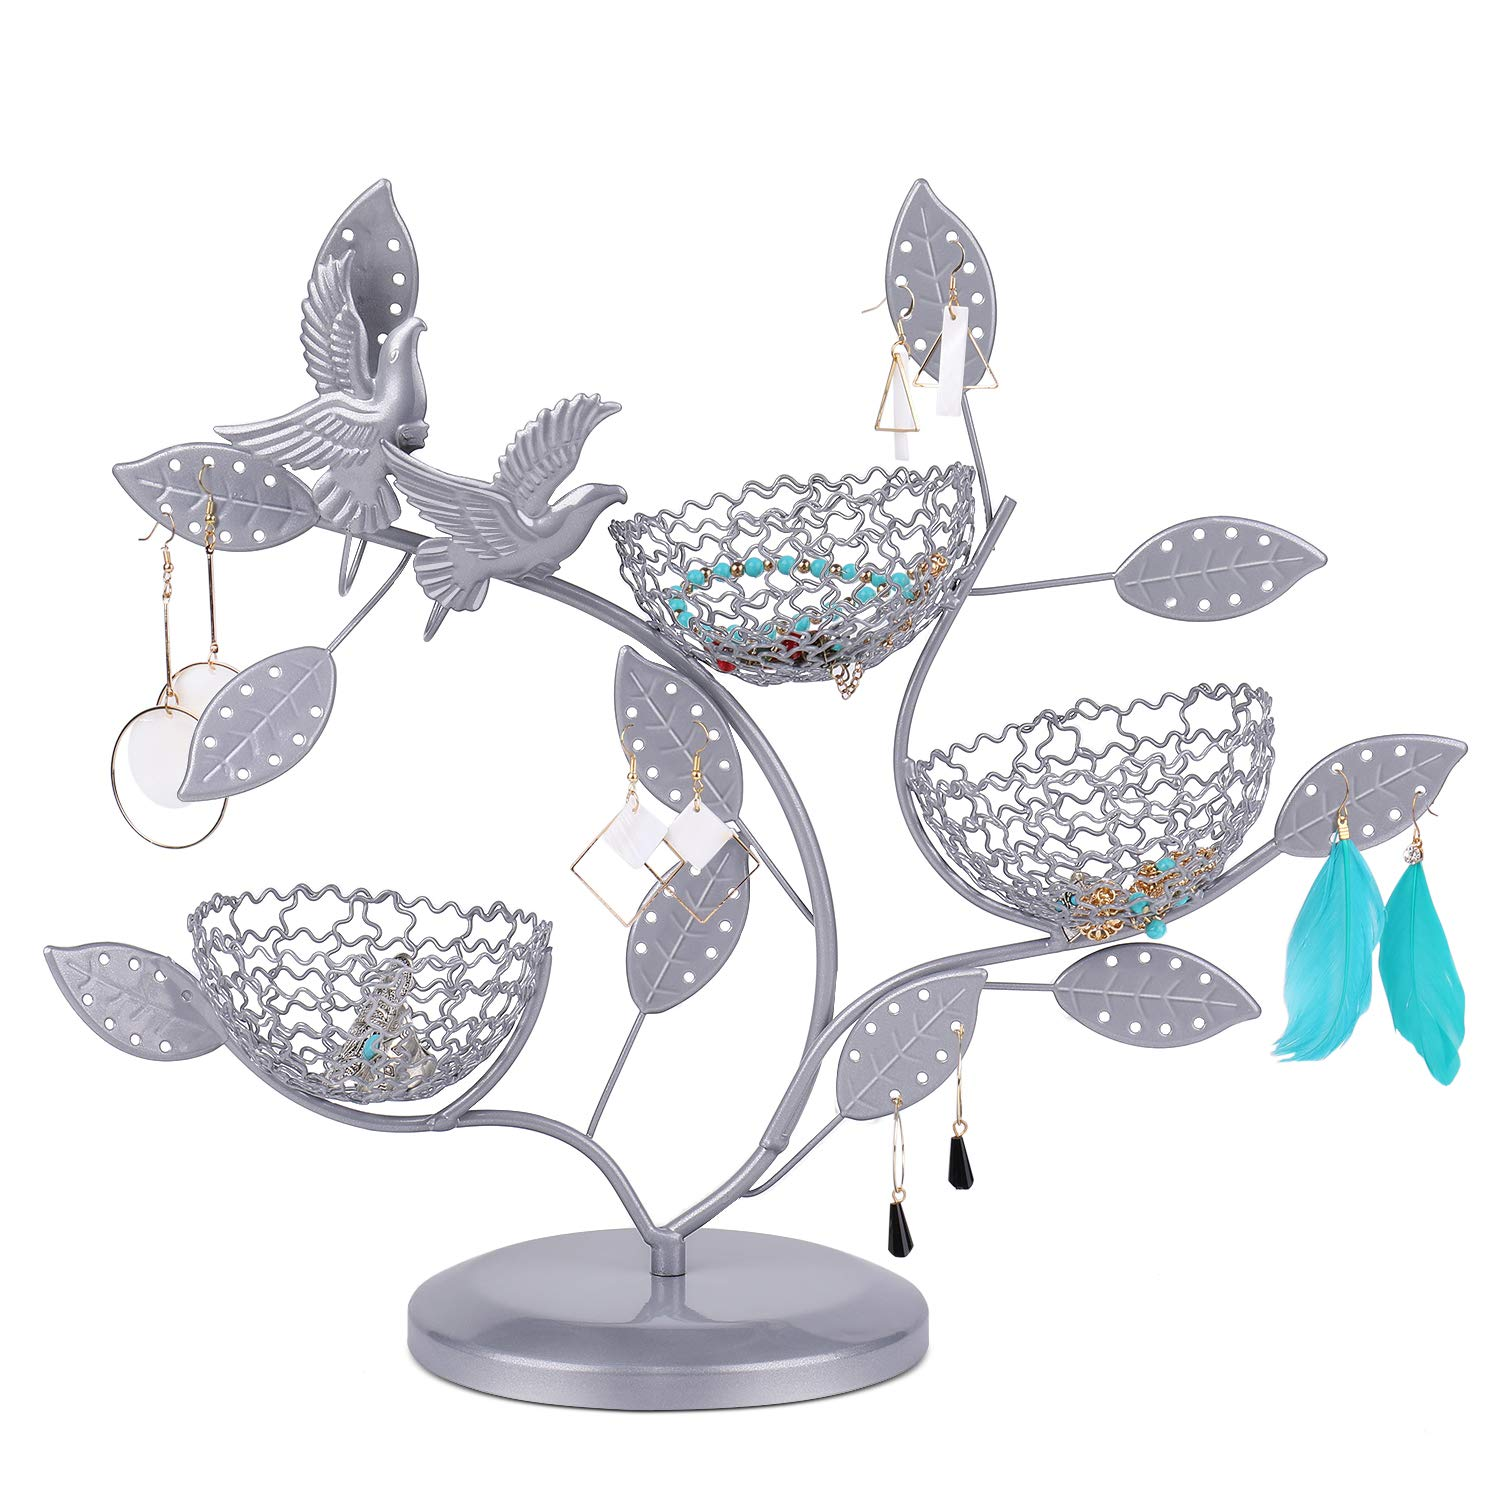 Earring Necklace Holder Rack Organizer Tower Table Top Decor Flexzion Jewelry Display Bird Nest Tree Stand Silver Ideal for Bangles Pendants Anklet